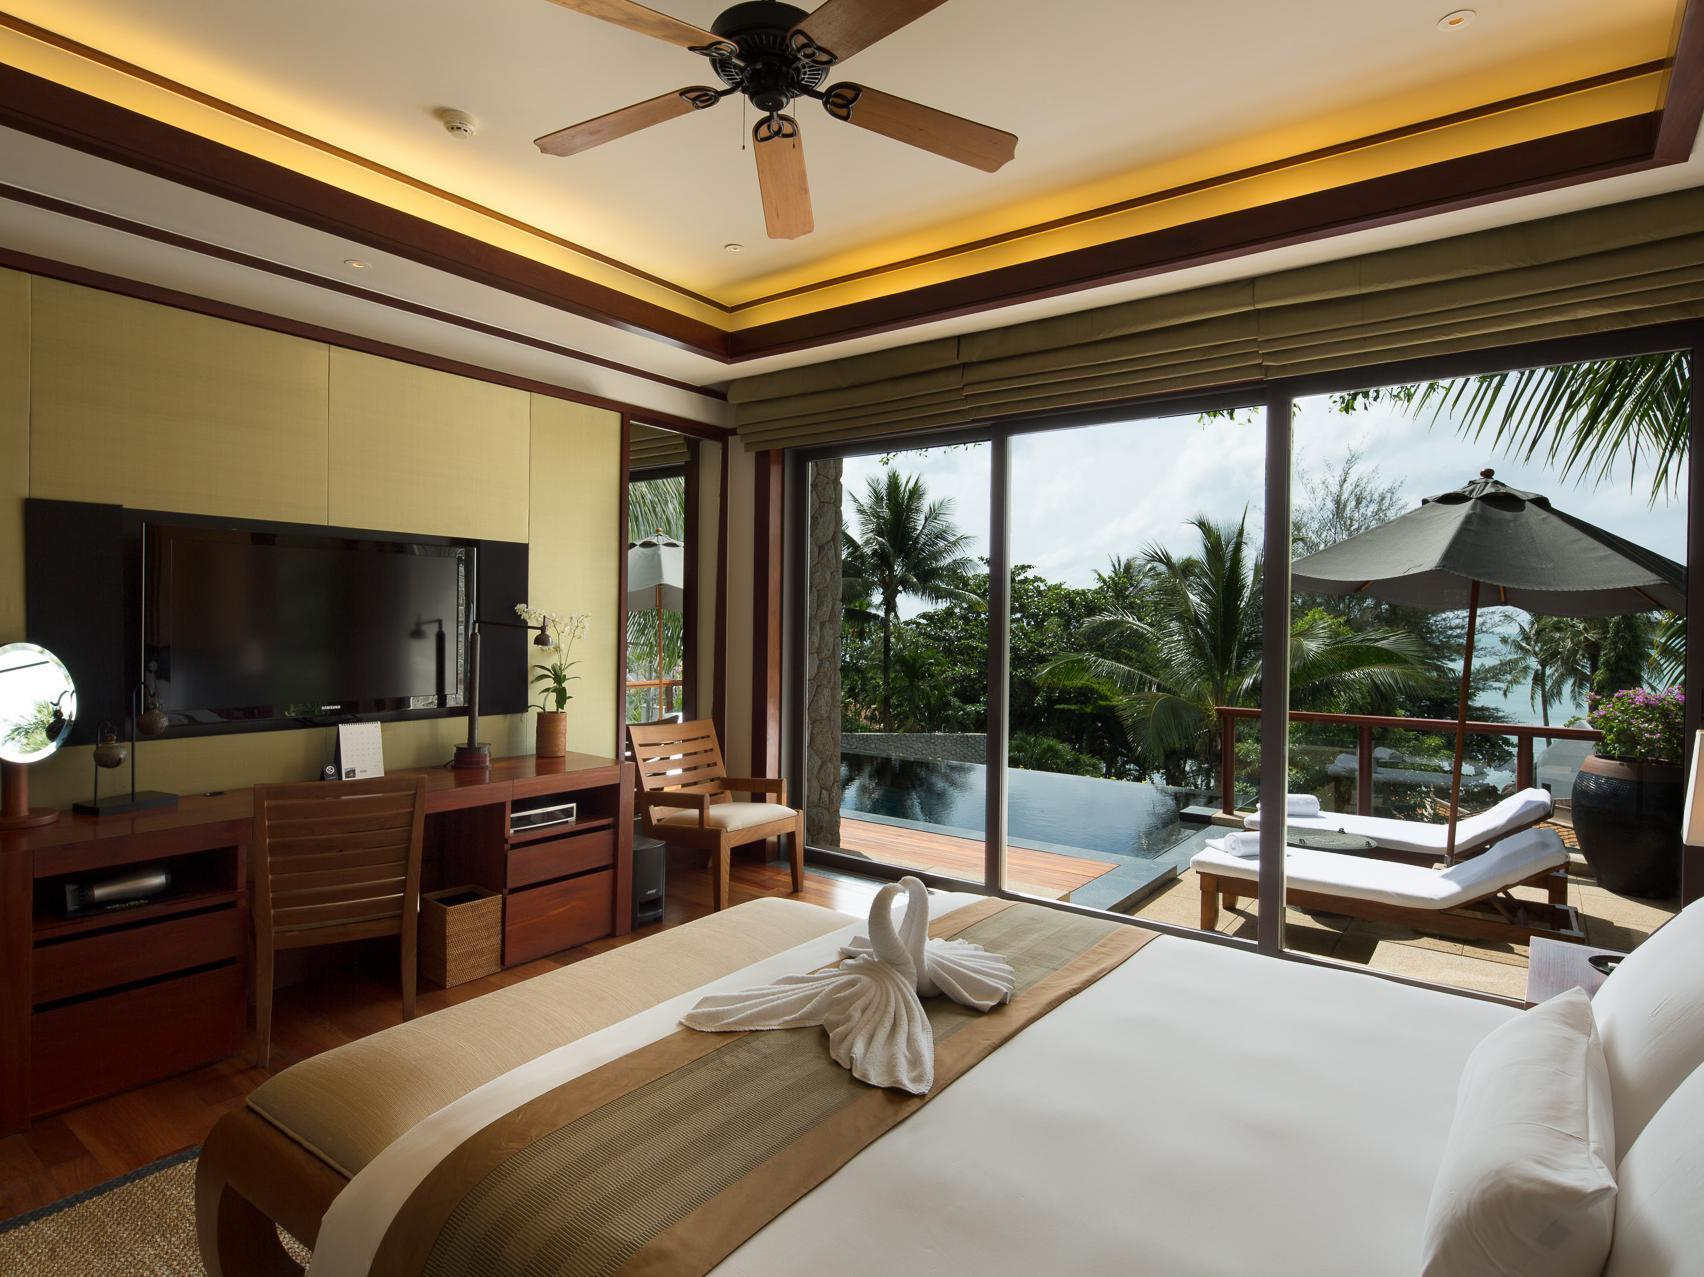 2-Bedroom Suite with Pool